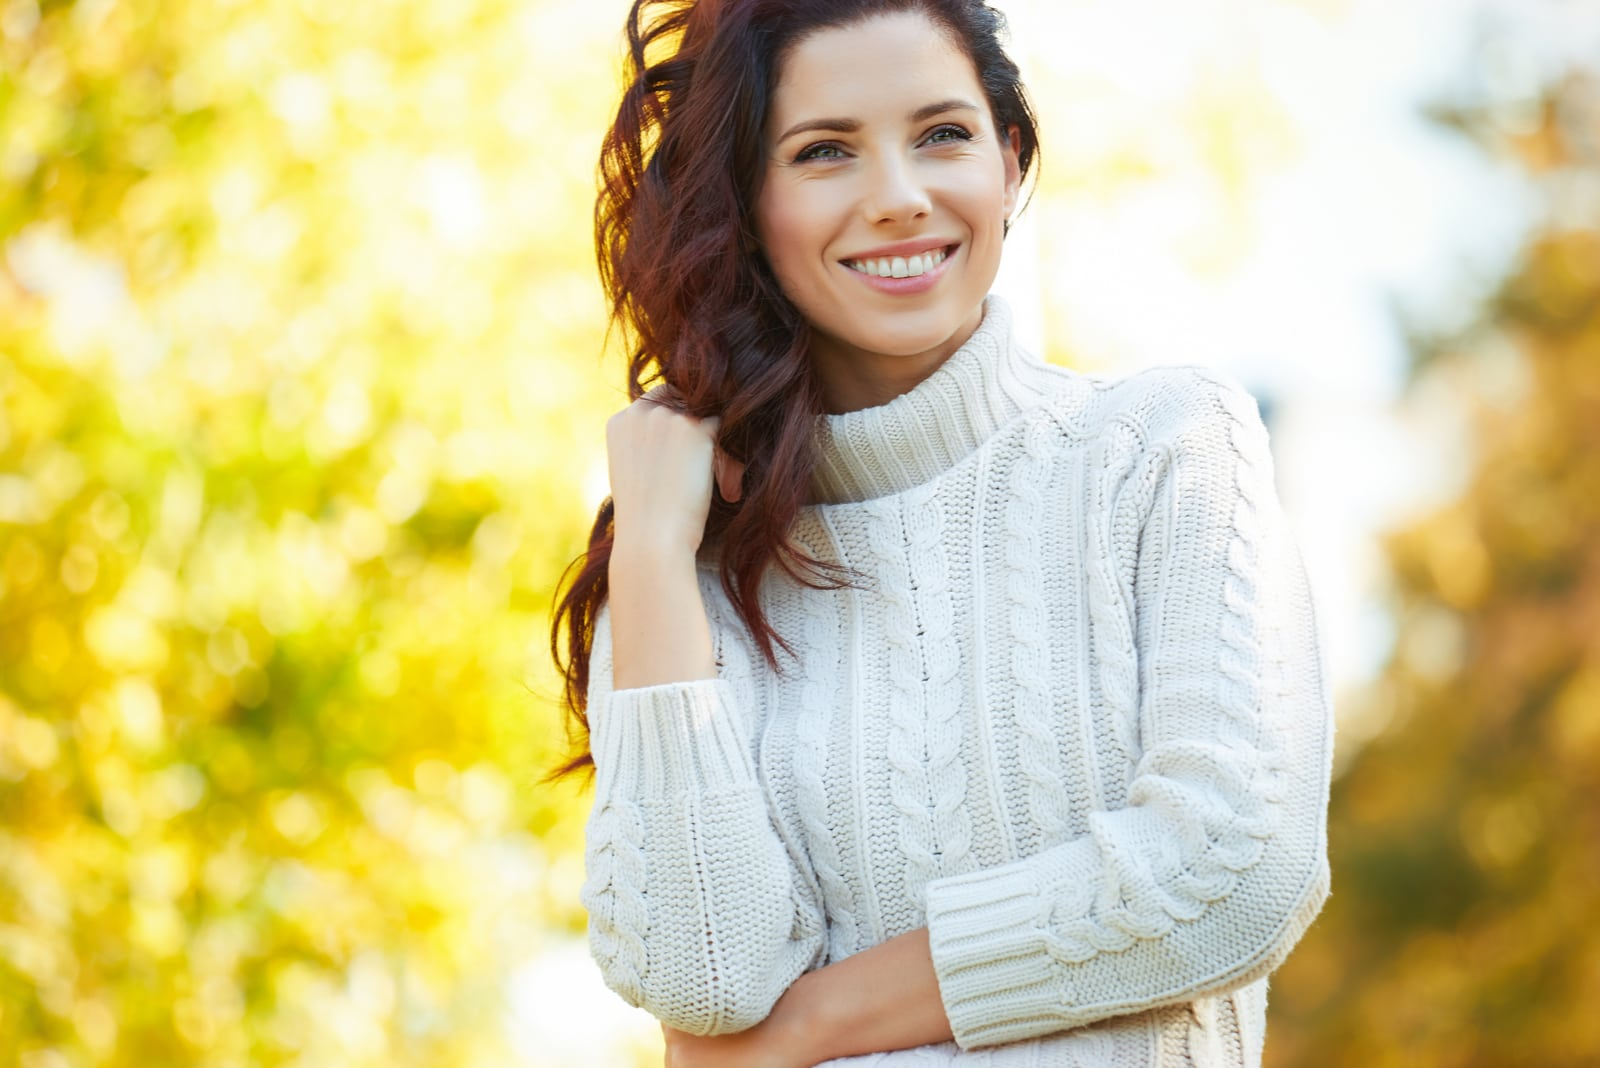 smiling woman standing outdoor